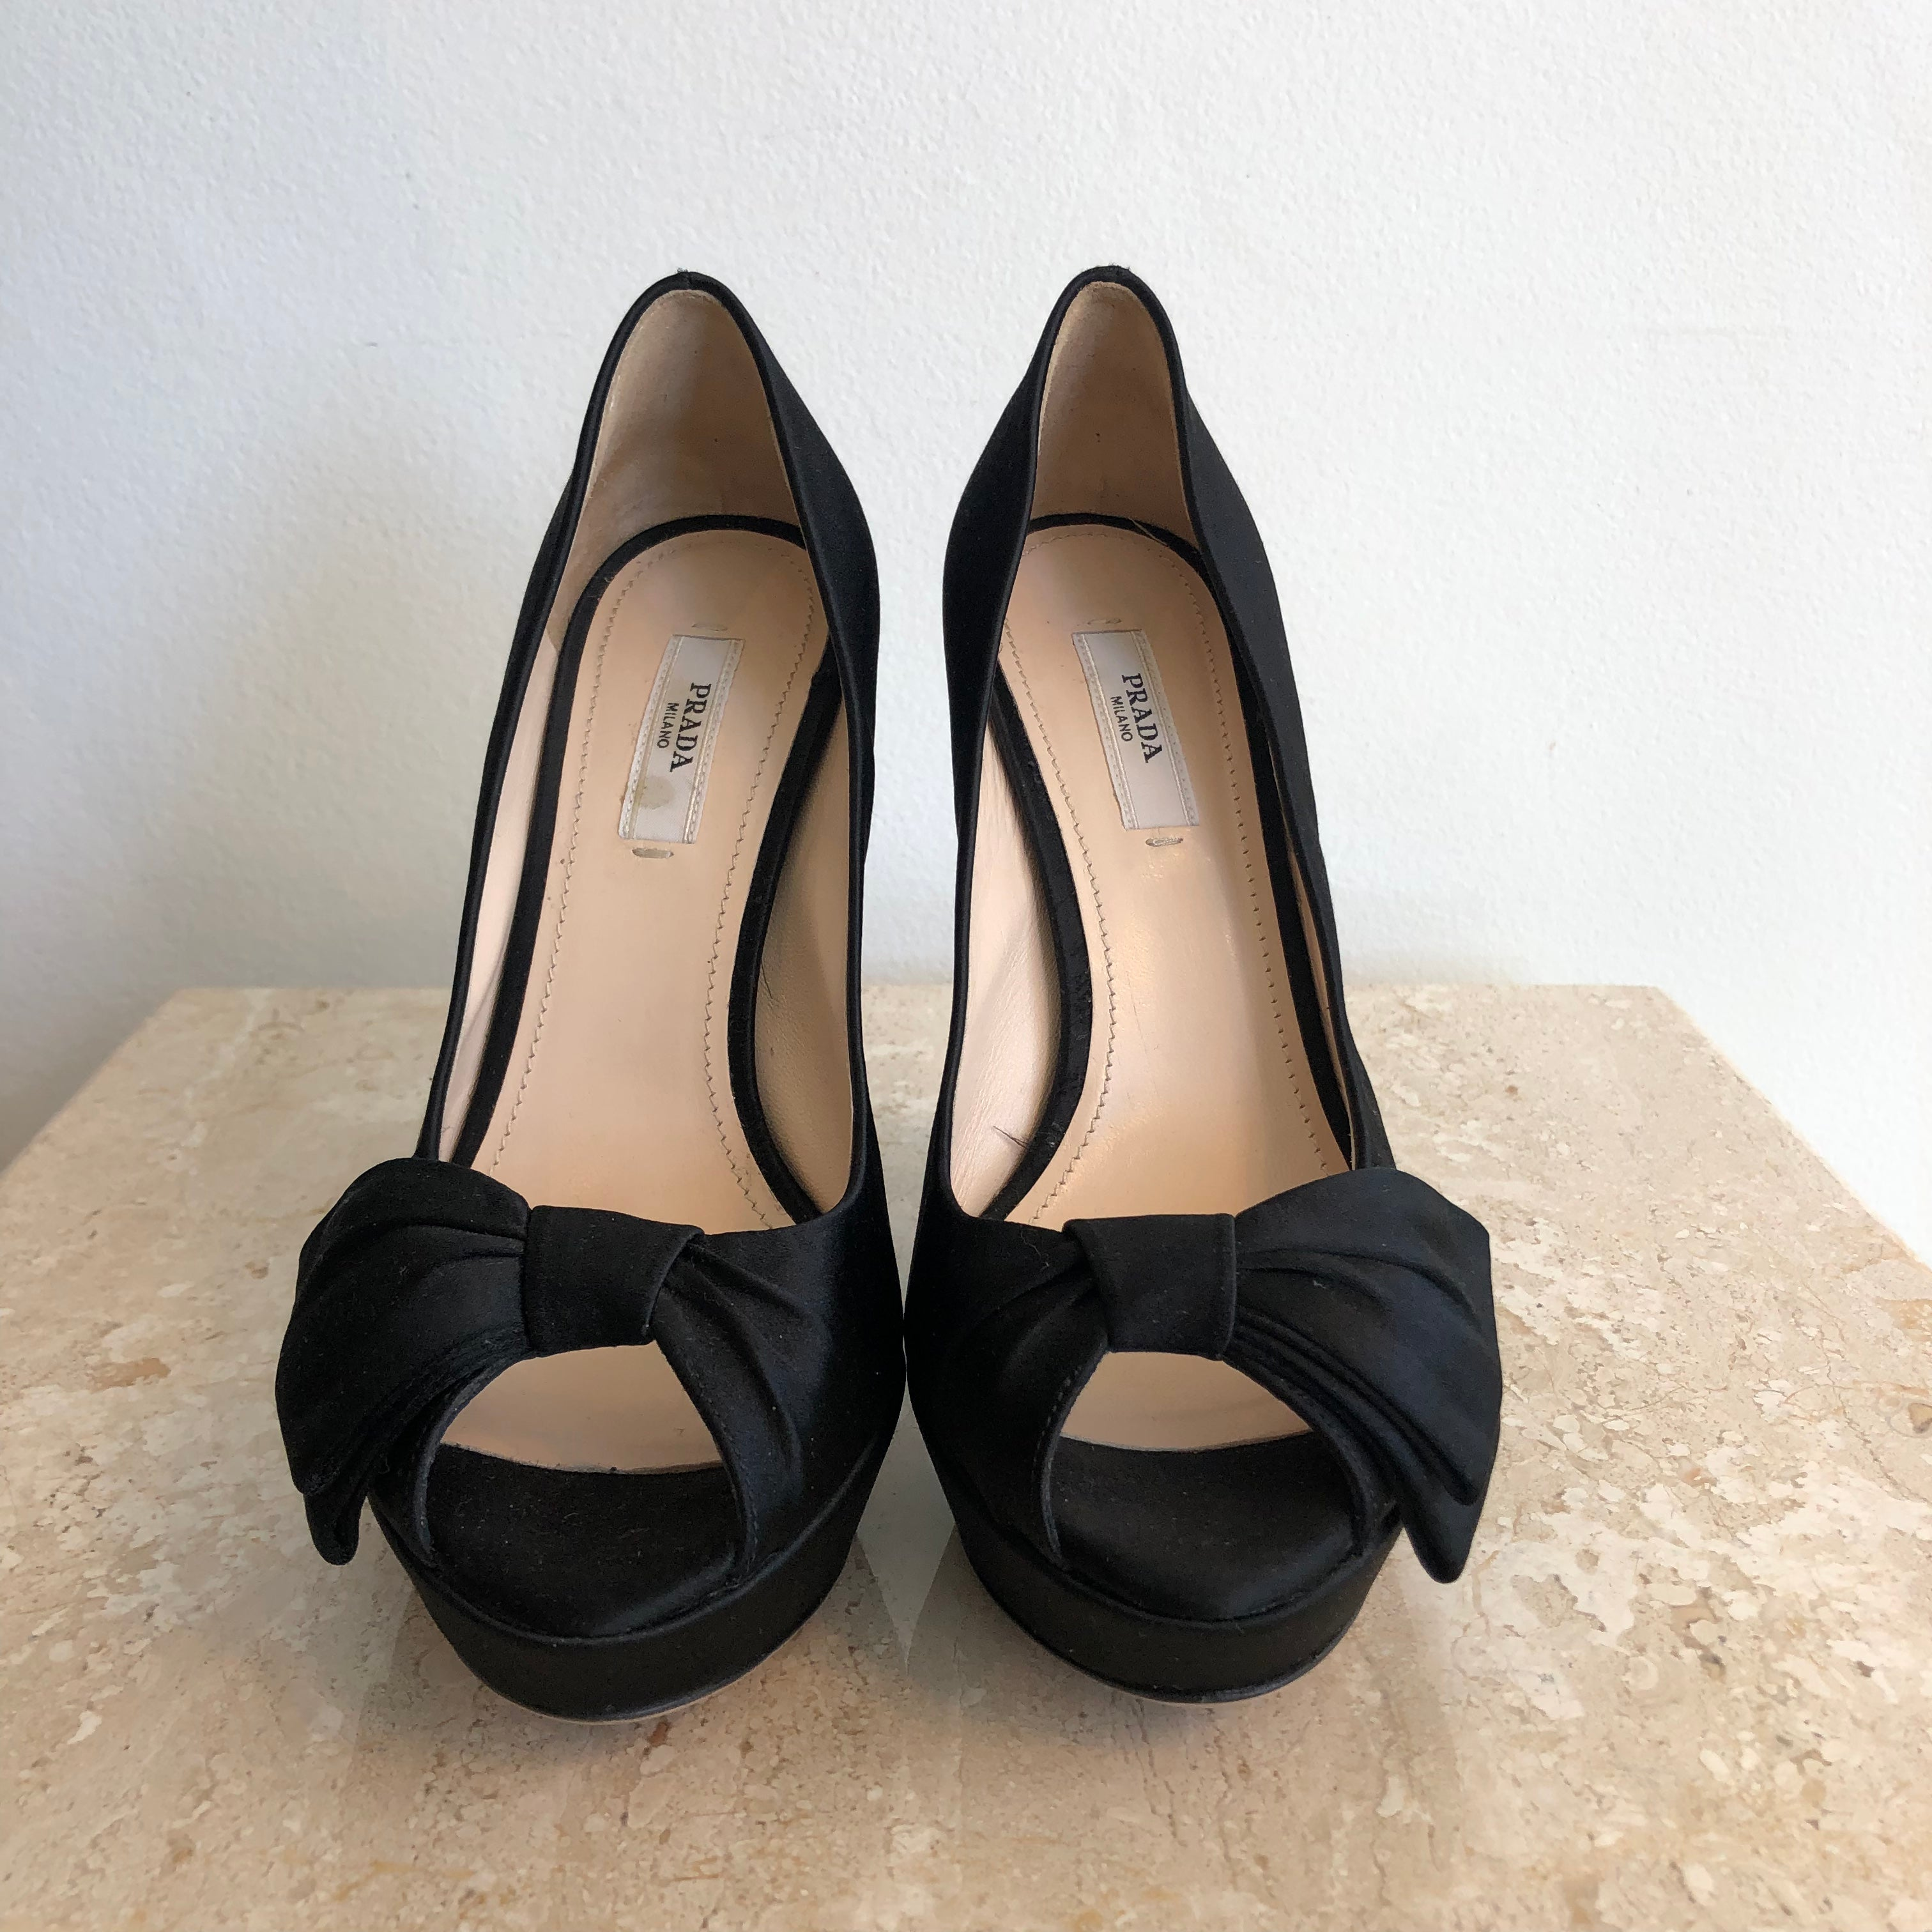 Prada black satin